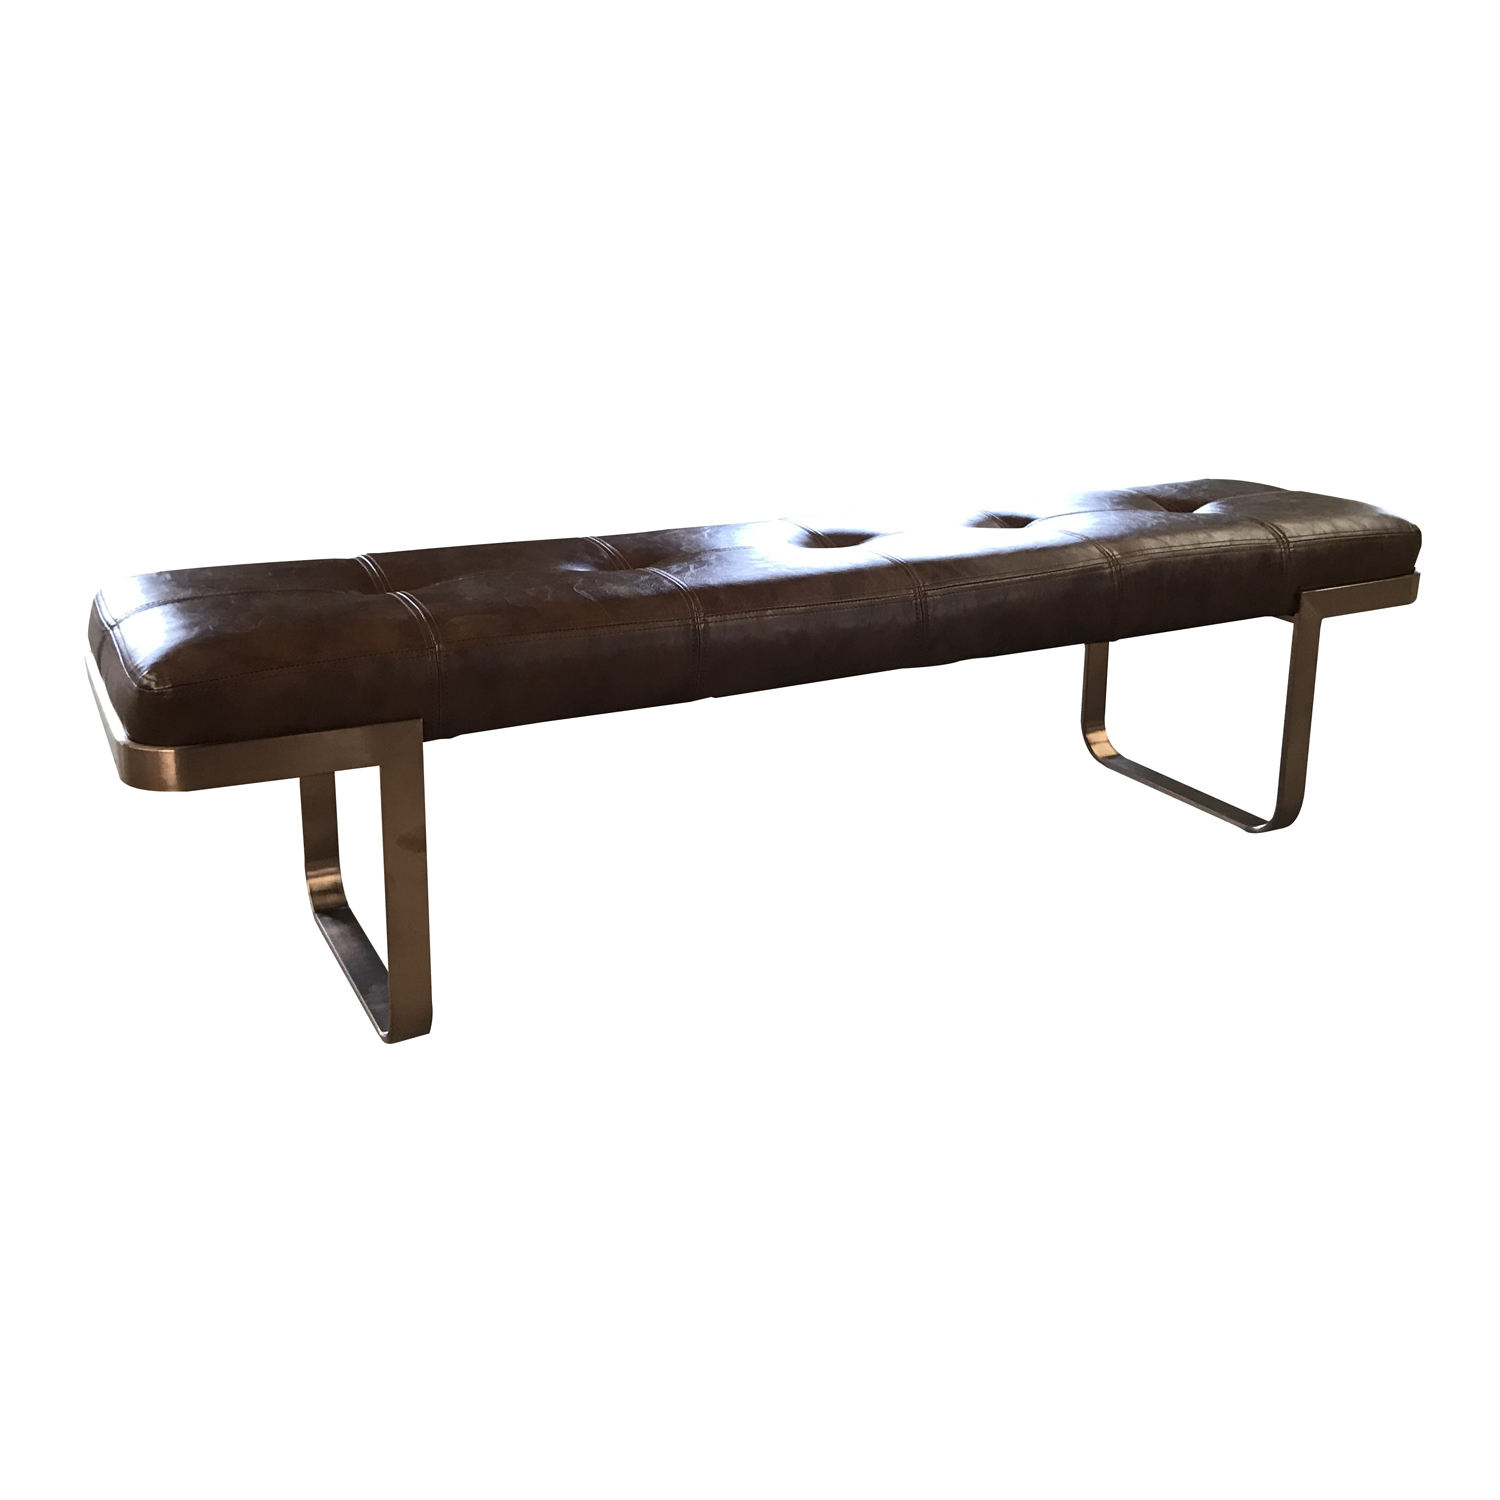 Gold frame stainless steel leather metal bench